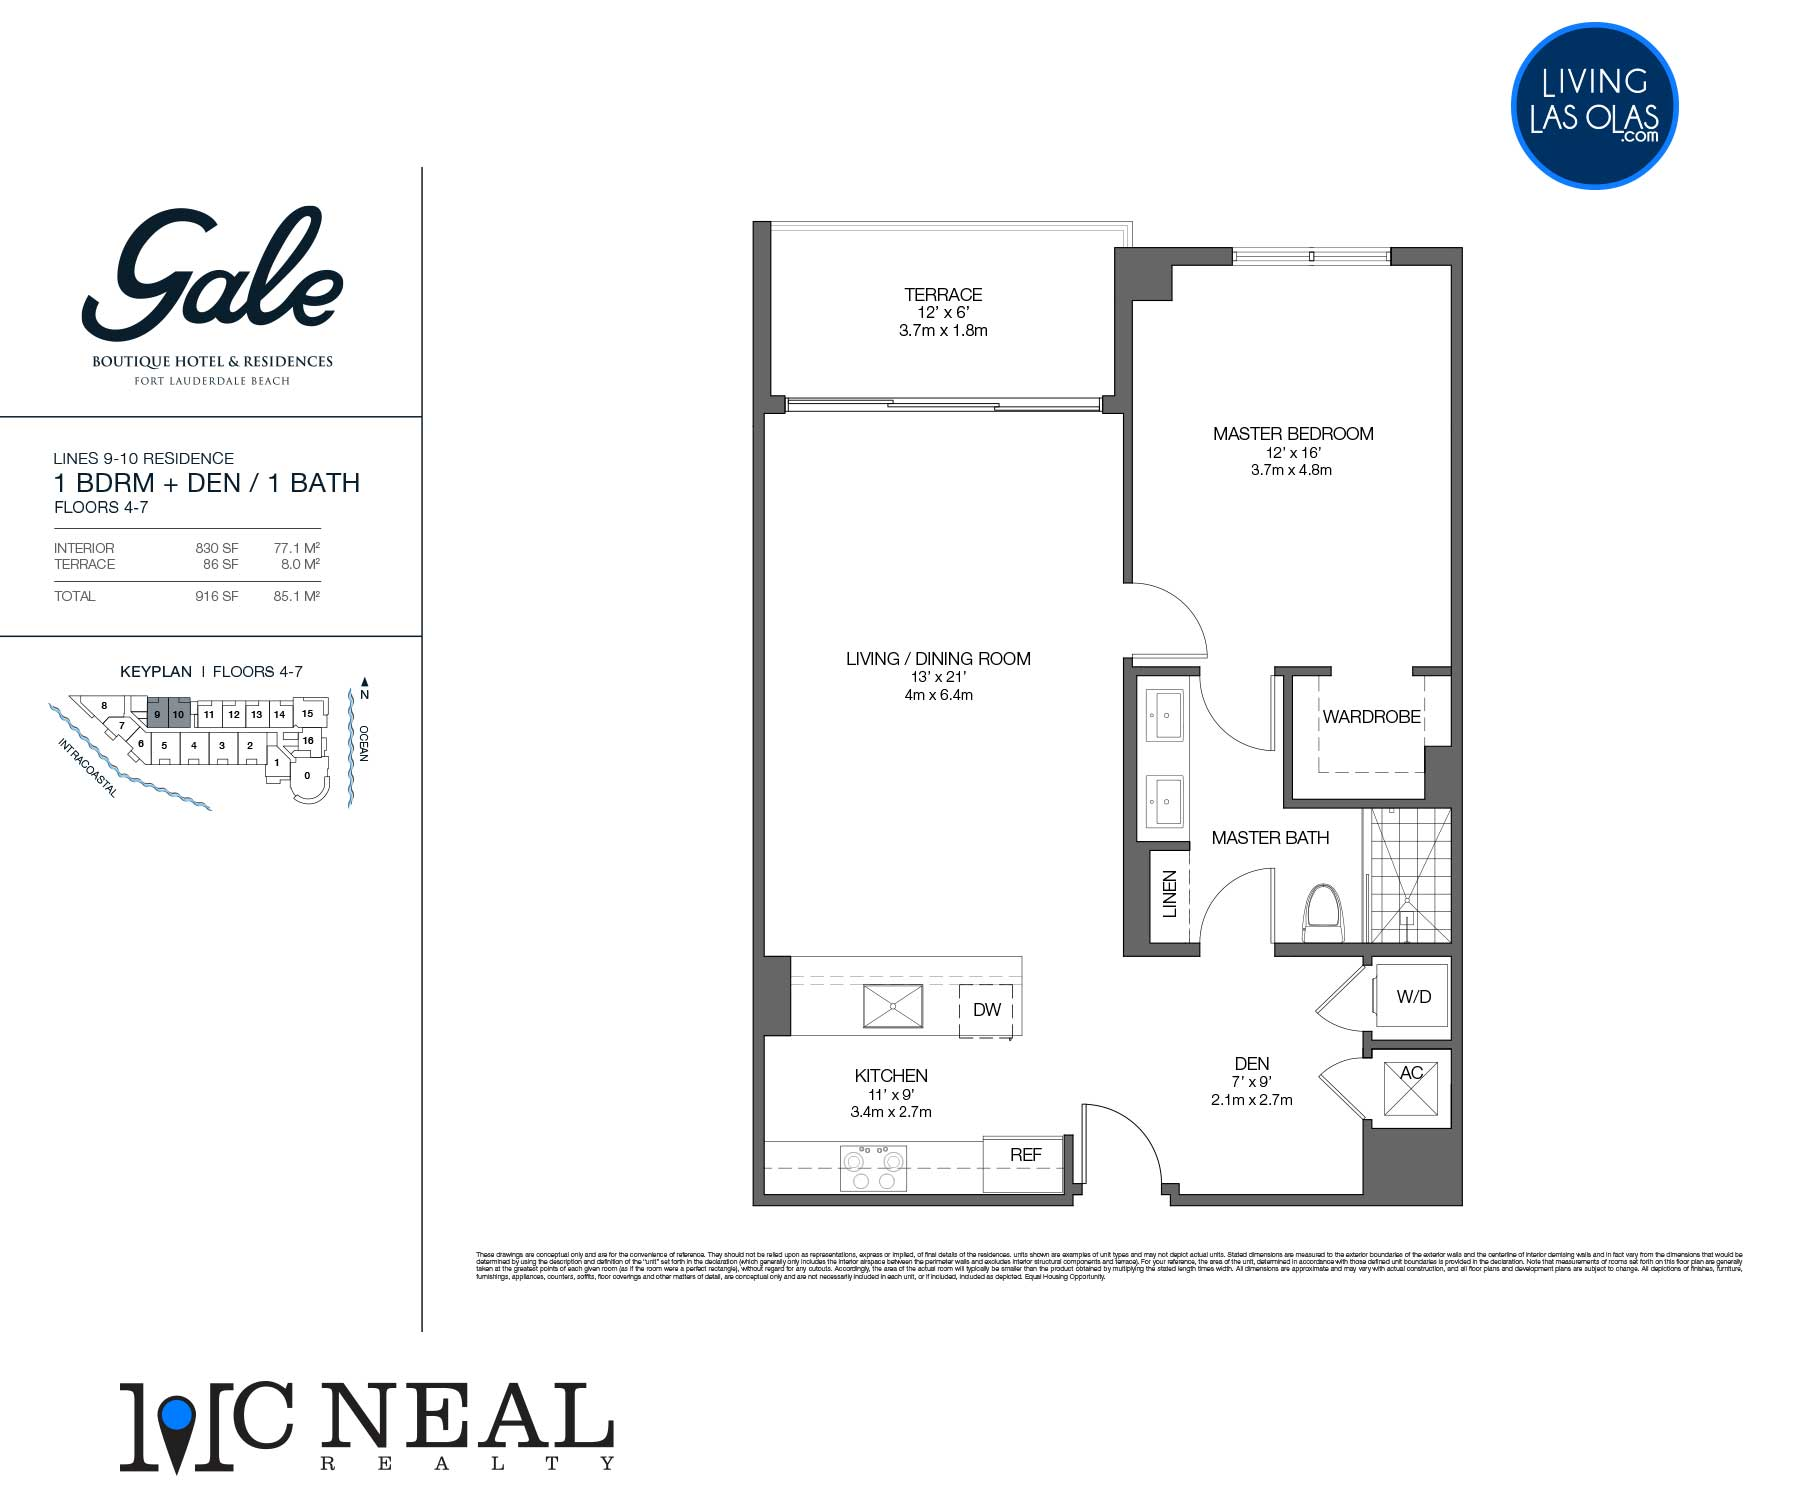 Tiffany House Condos Floor Plans Line 9-10